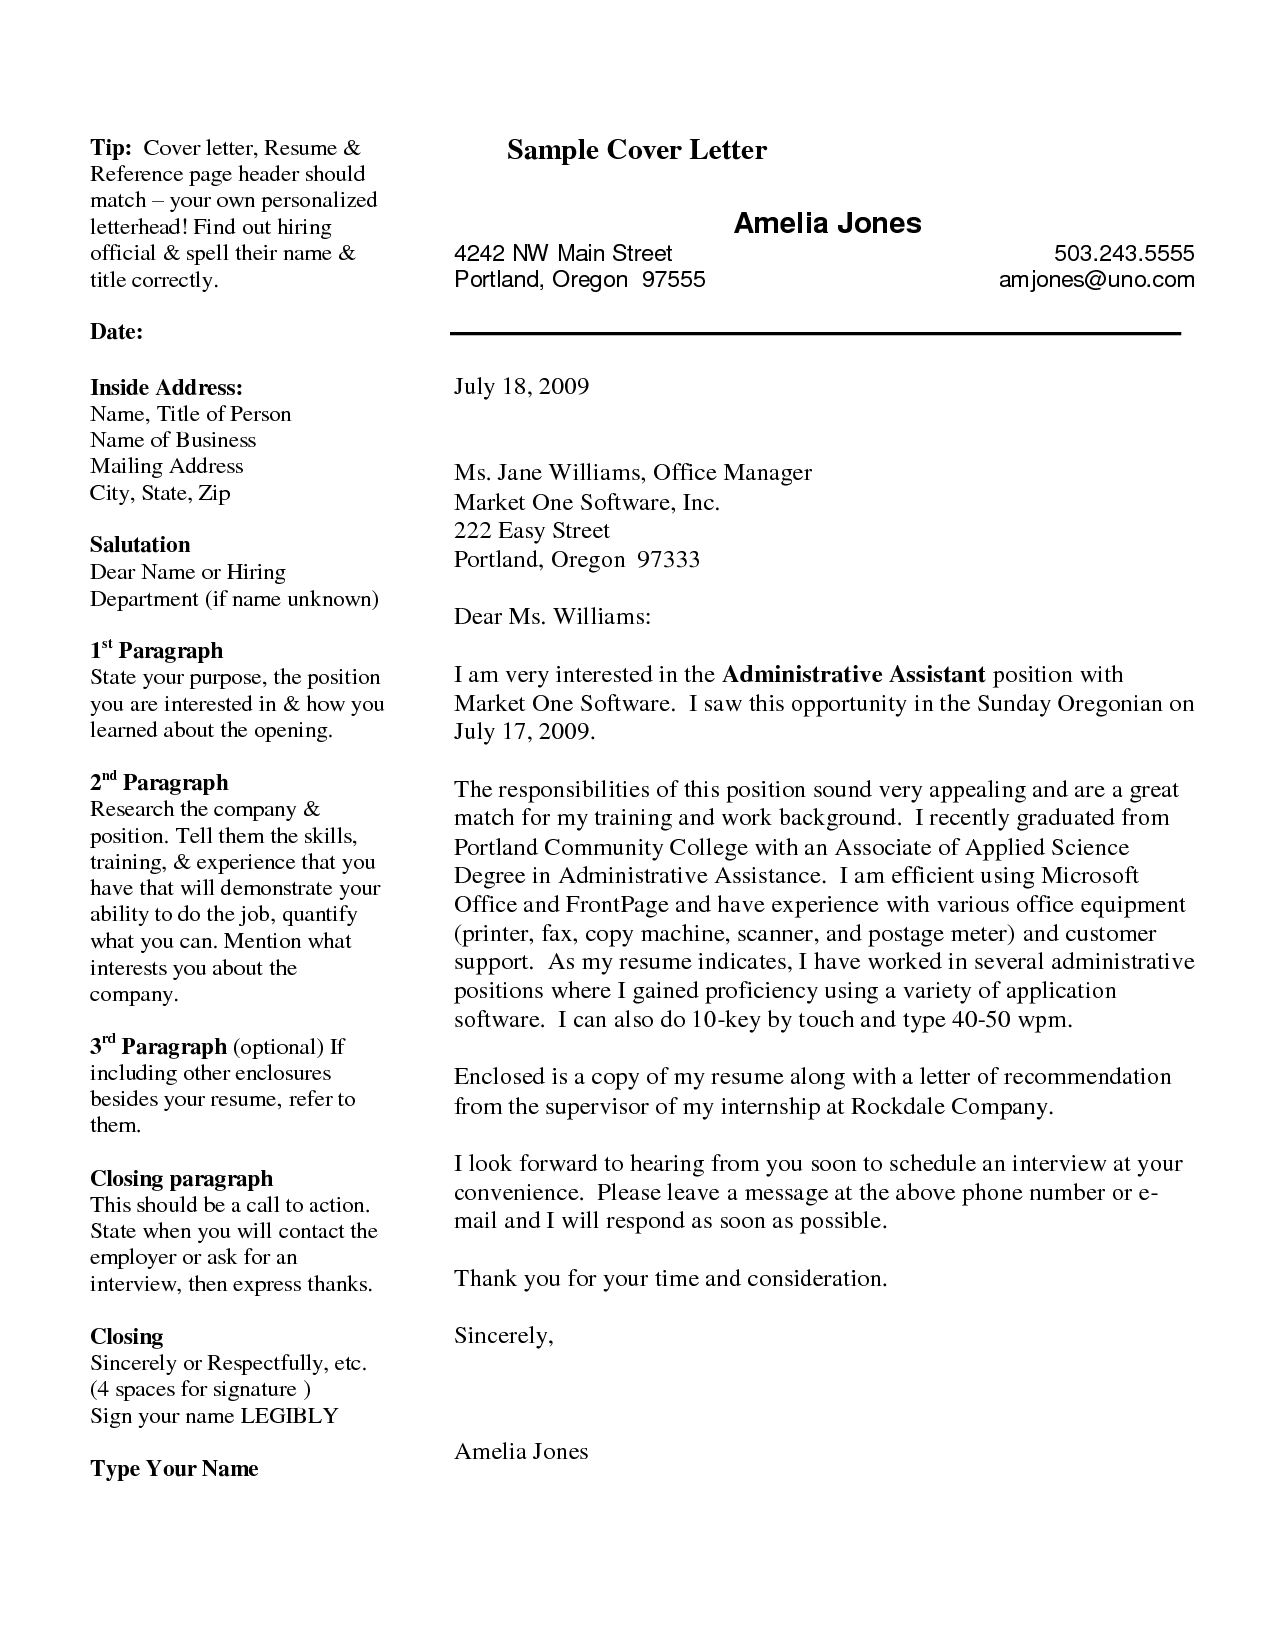 Professional Resume Cover Letter SamplesProfessional Resume Cover Letter  Samples Professional Resume Cover Letter Samples,how  Cover Letter And Resume